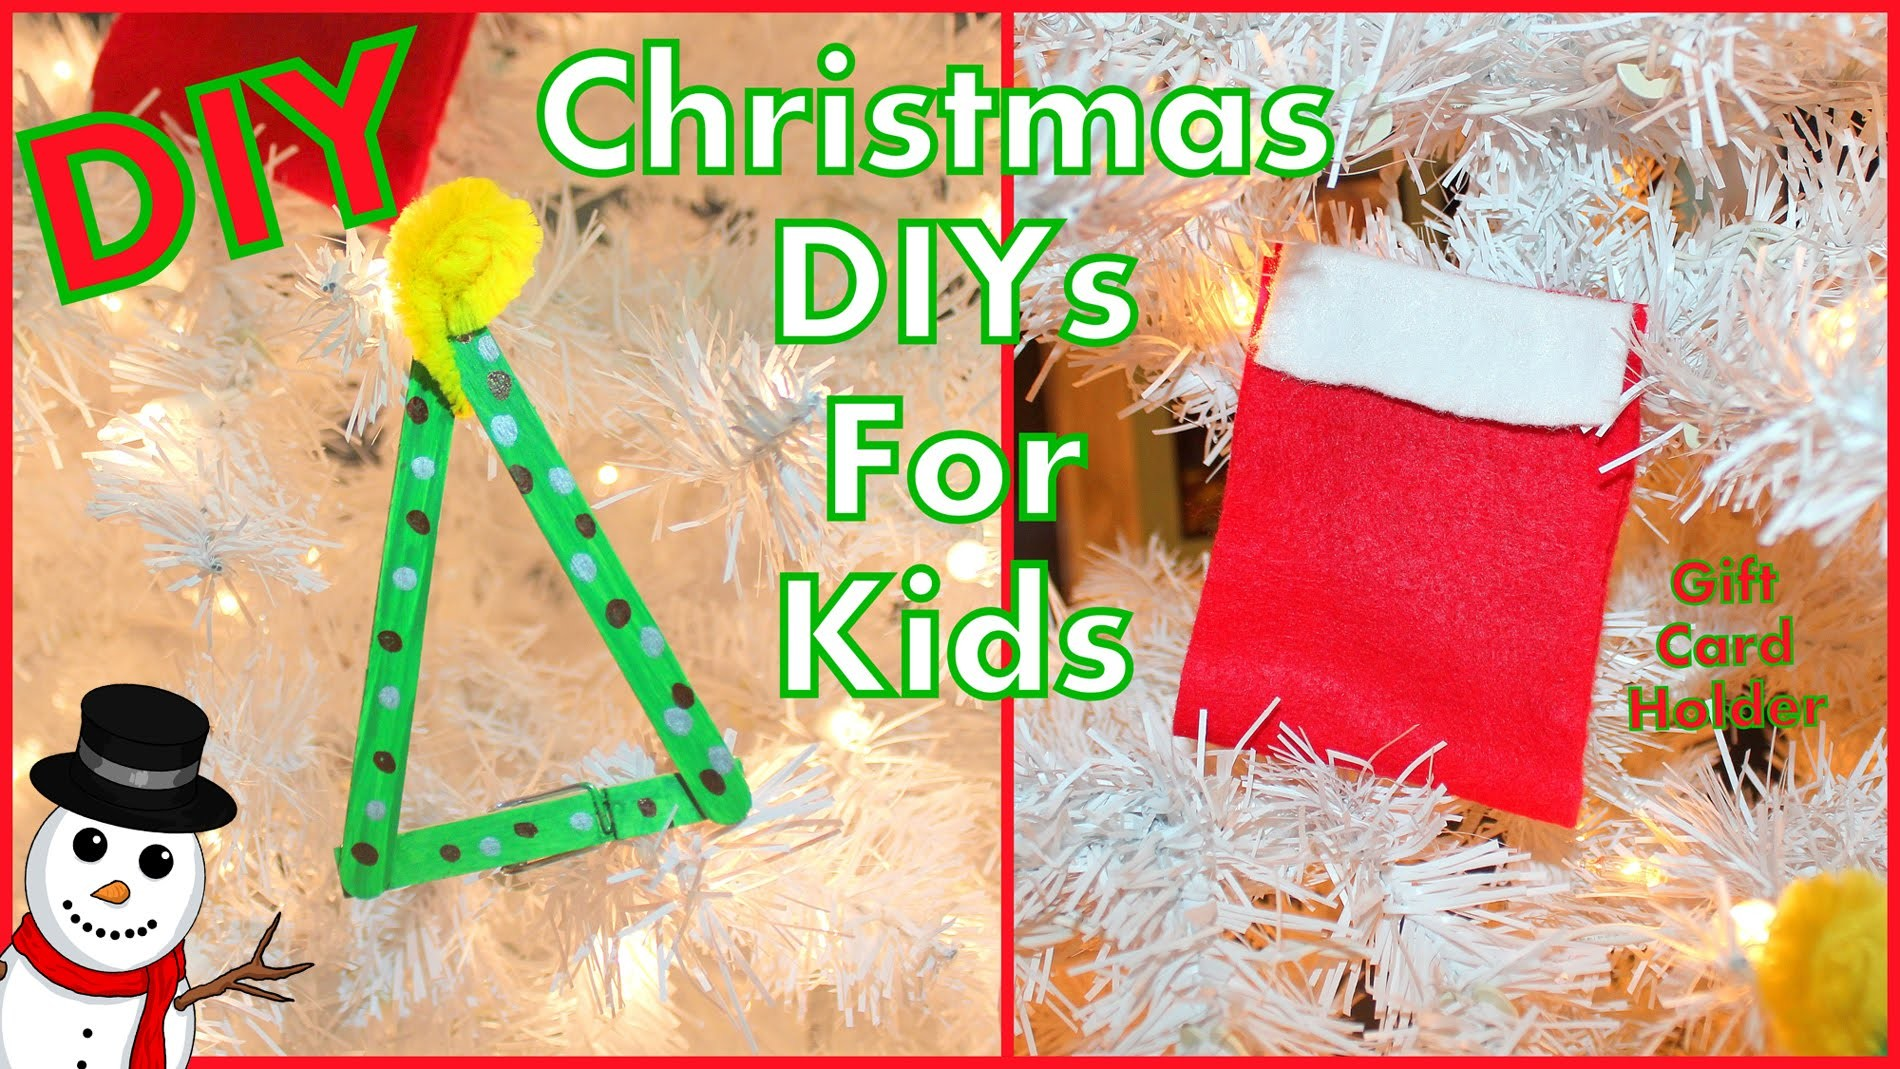 DIY Kids Christmas Crafts | DIY Gift Card Holder & Tree Ornament | Christmas Collab | Christmas Fun